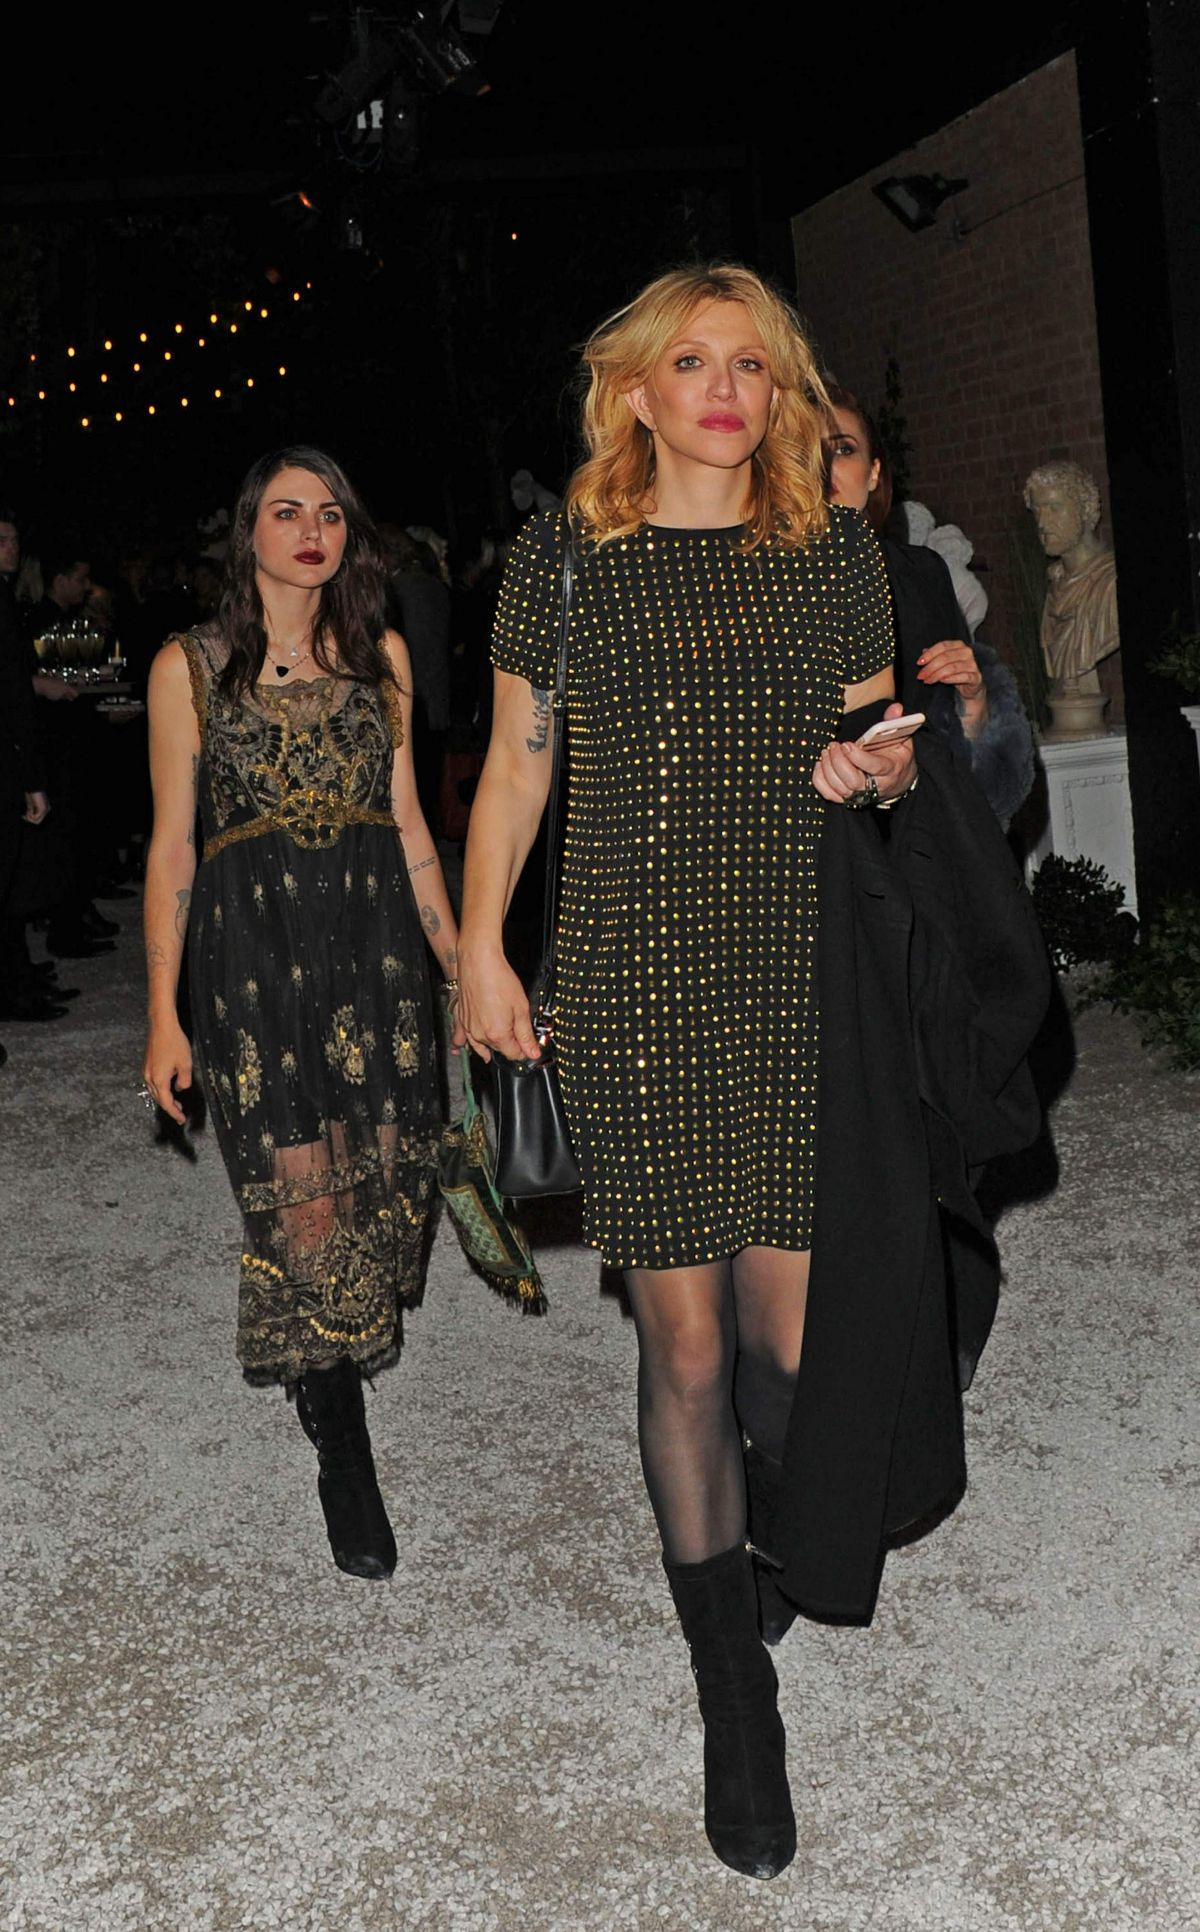 COURTNEY LOVE at Night Launch Party in London 09/20/2016 - HawtCelebs ...